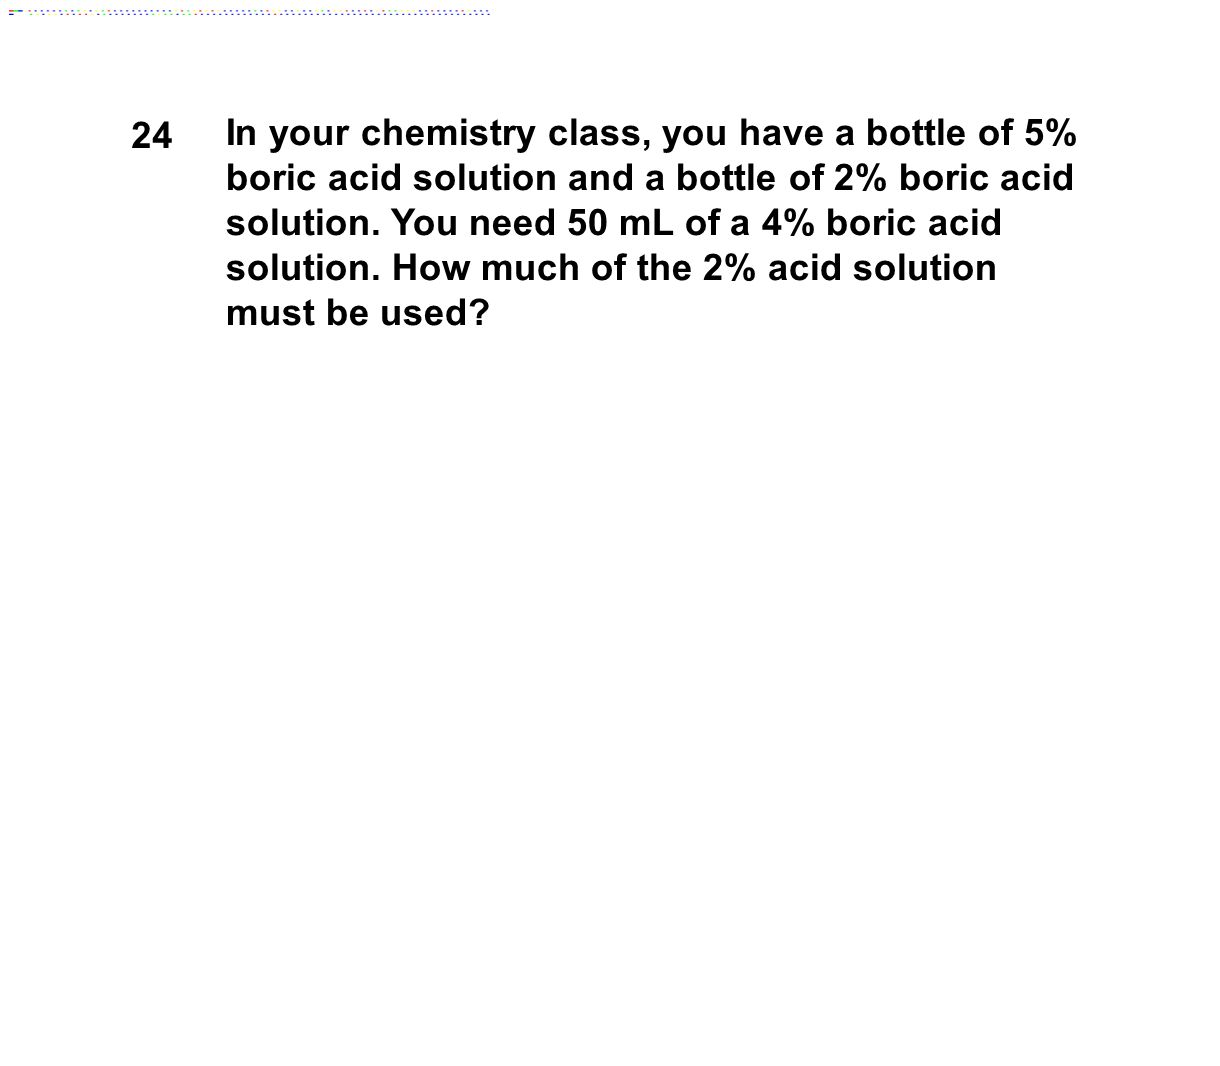 24 In your chemistry class, you have a bottle of 5% boric acid solution and a bottle of 2% boric acid solution. You need 50 mL of a 4% boric acid solu